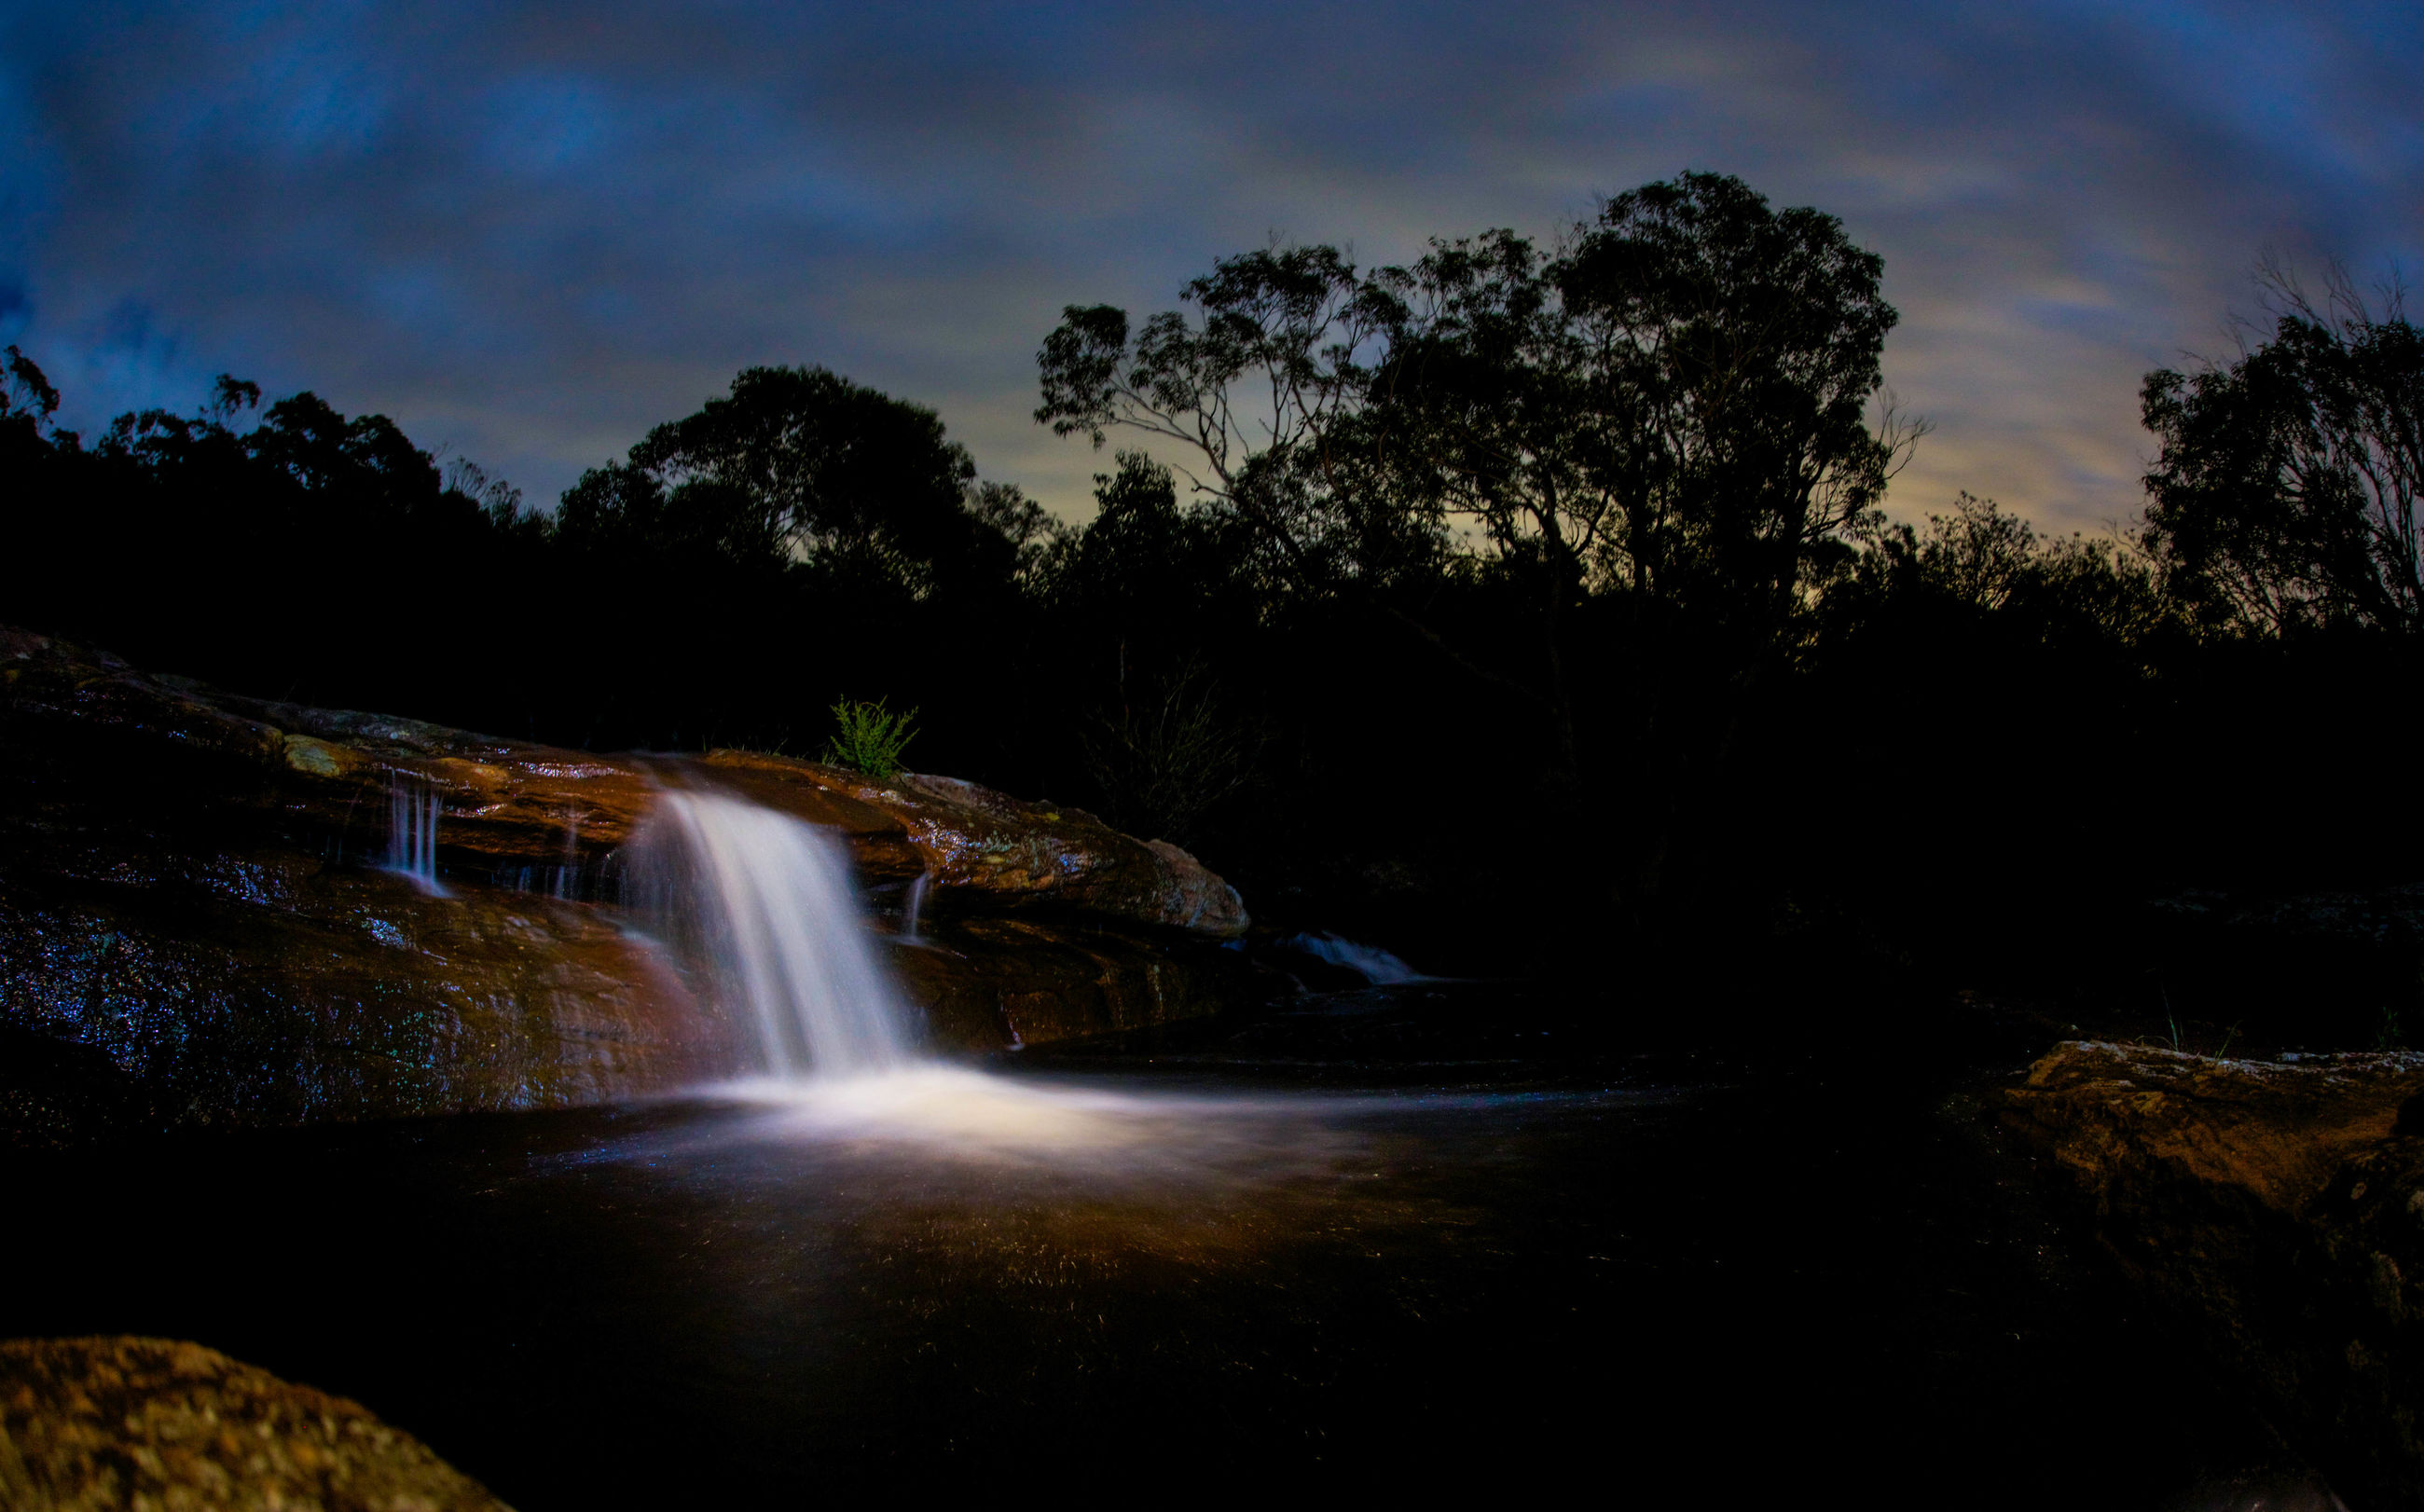 tree, water, long exposure, scenics, sky, beauty in nature, motion, nature, waterfall, flowing water, tranquil scene, tranquility, cloud - sky, idyllic, rock - object, flowing, outdoors, forest, silhouette, no people